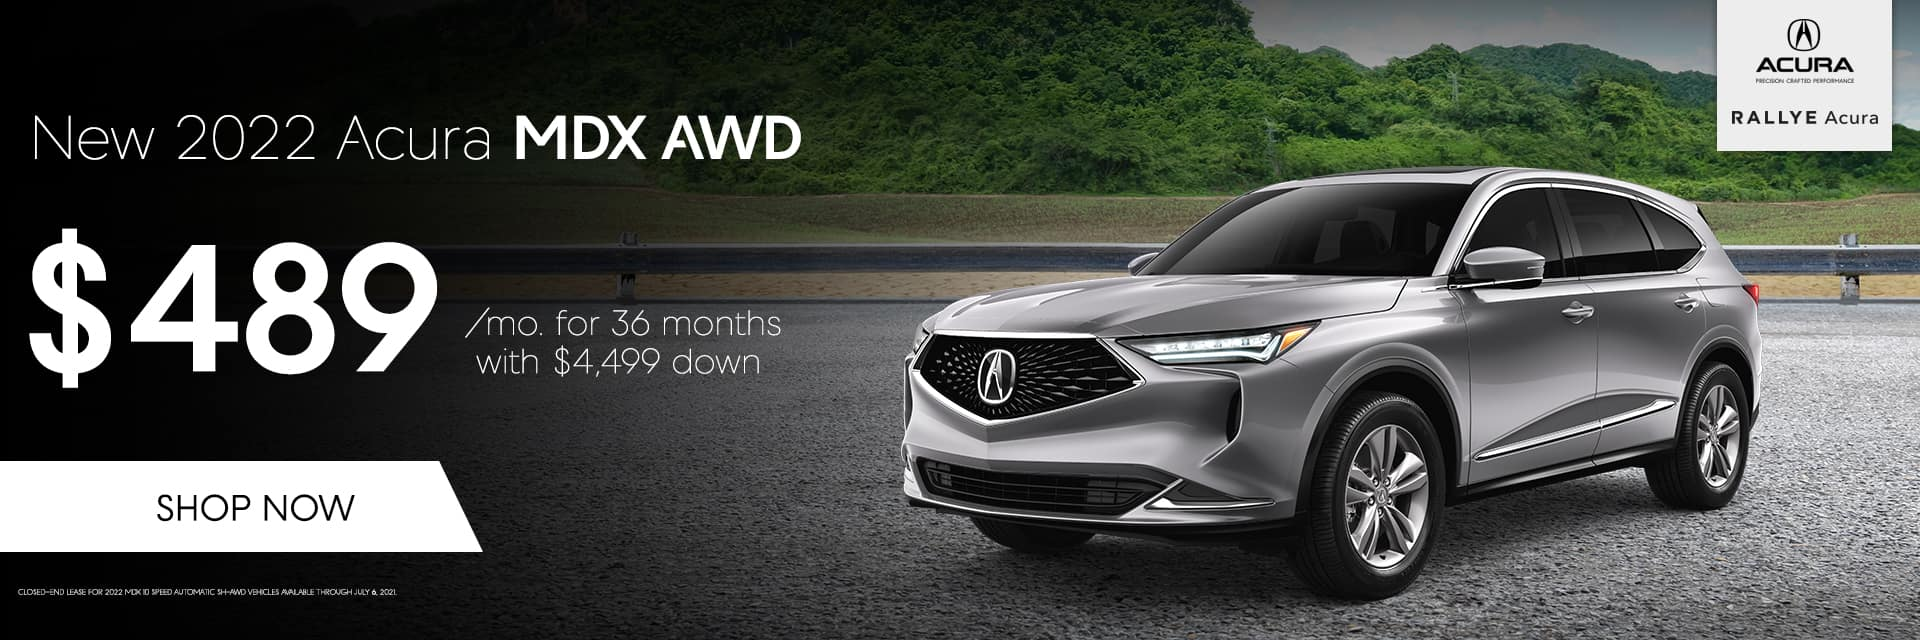 Lease a 2022 Acura MDX AWD. $489/mo. for 36 months with $4,499 down.